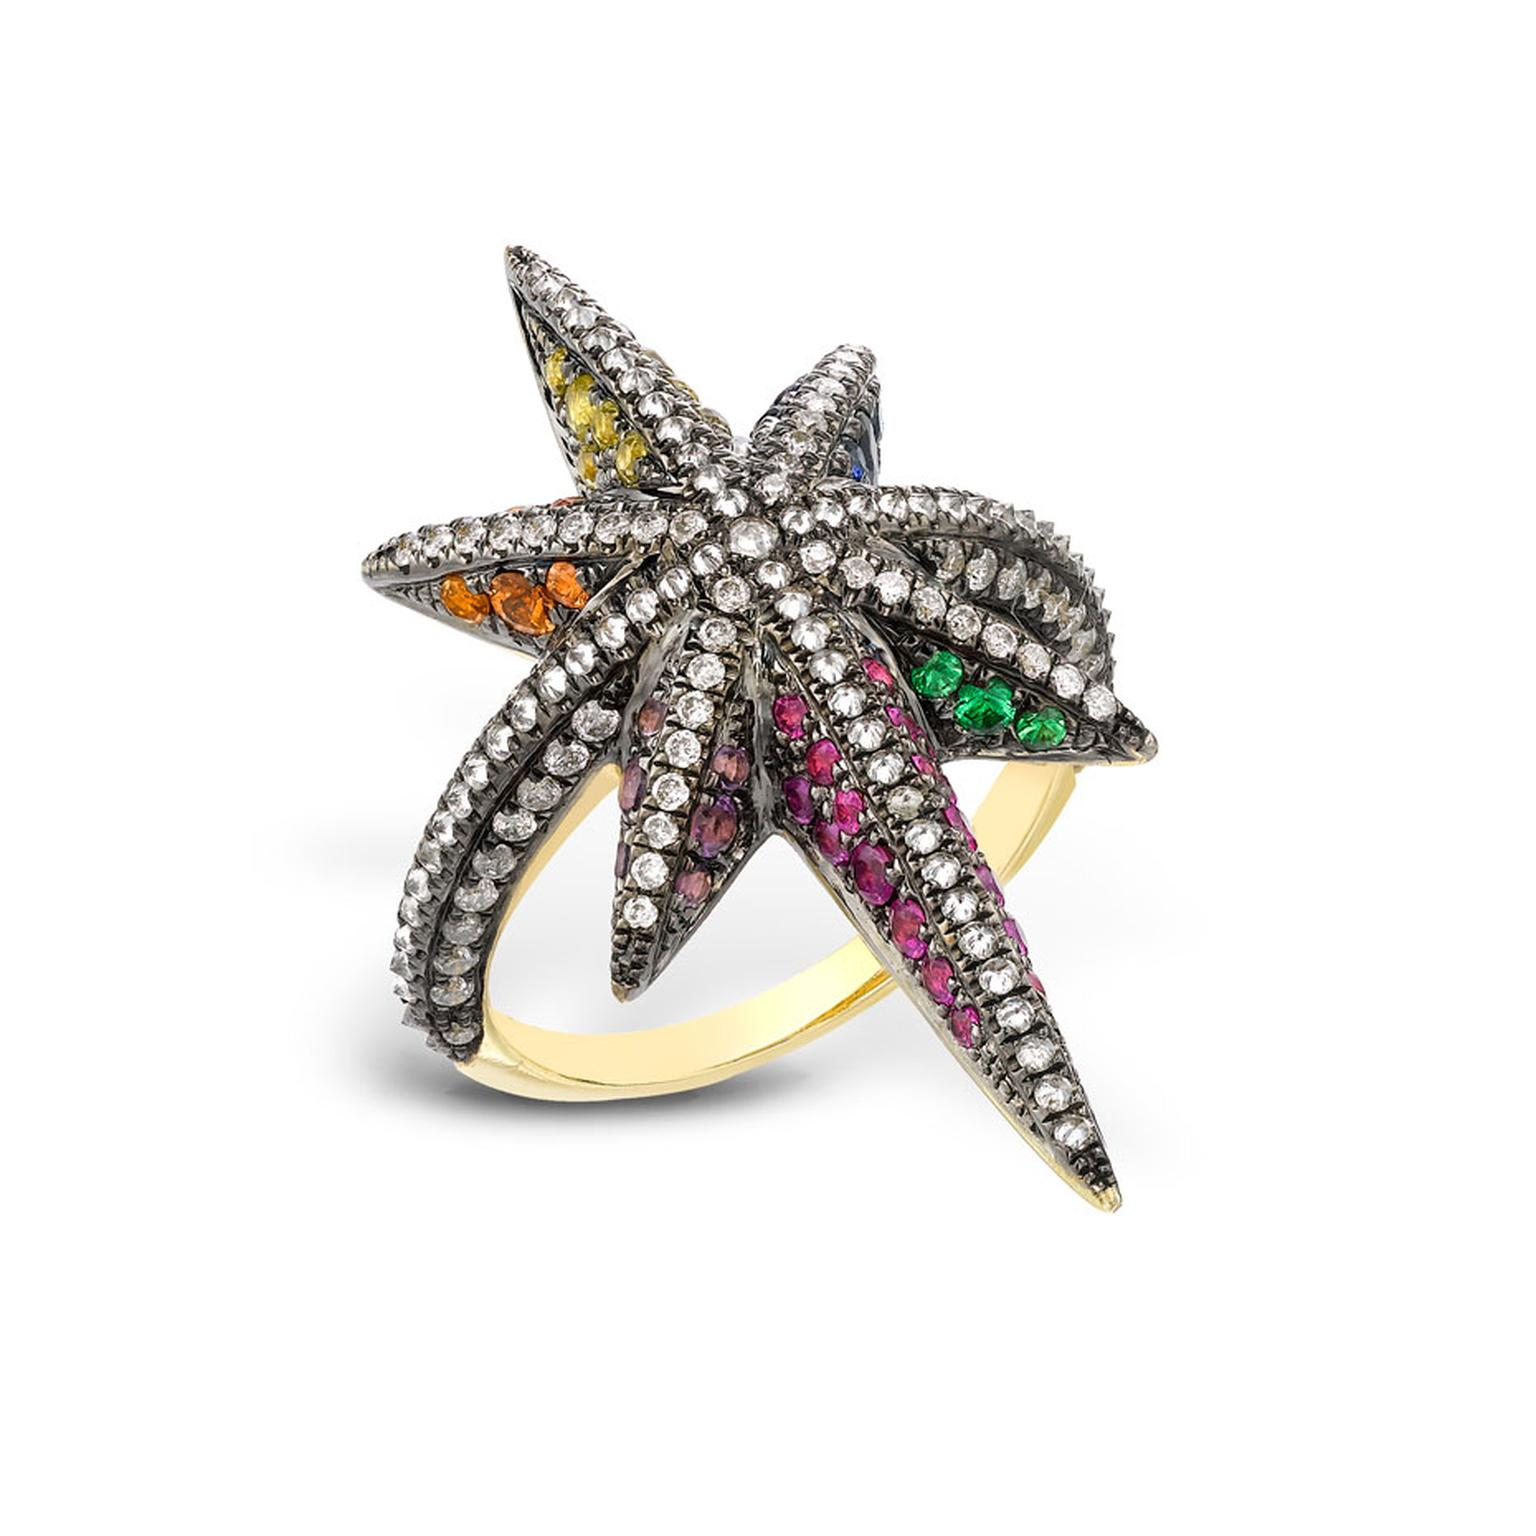 Venyx Theiya Star ring set with fancy color sapphires and diamonds.